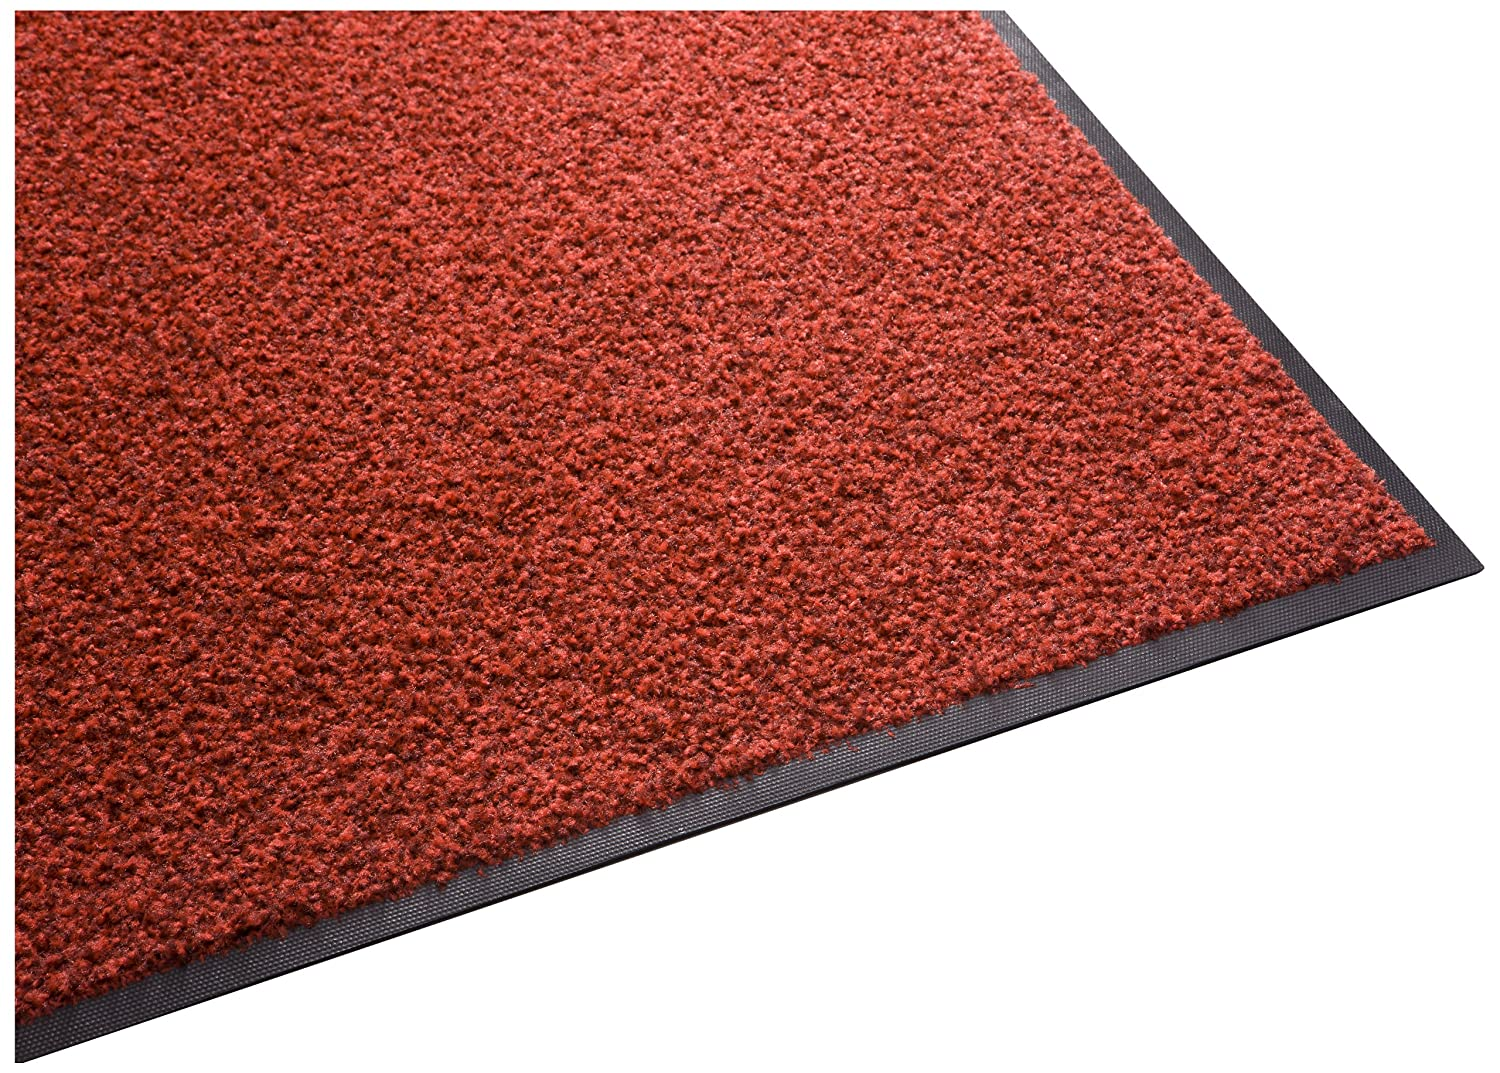 Burgundy Rubber with Nylon Carpet 4x5 Guardian Platinum Series Indoor Wiper Floor Mat